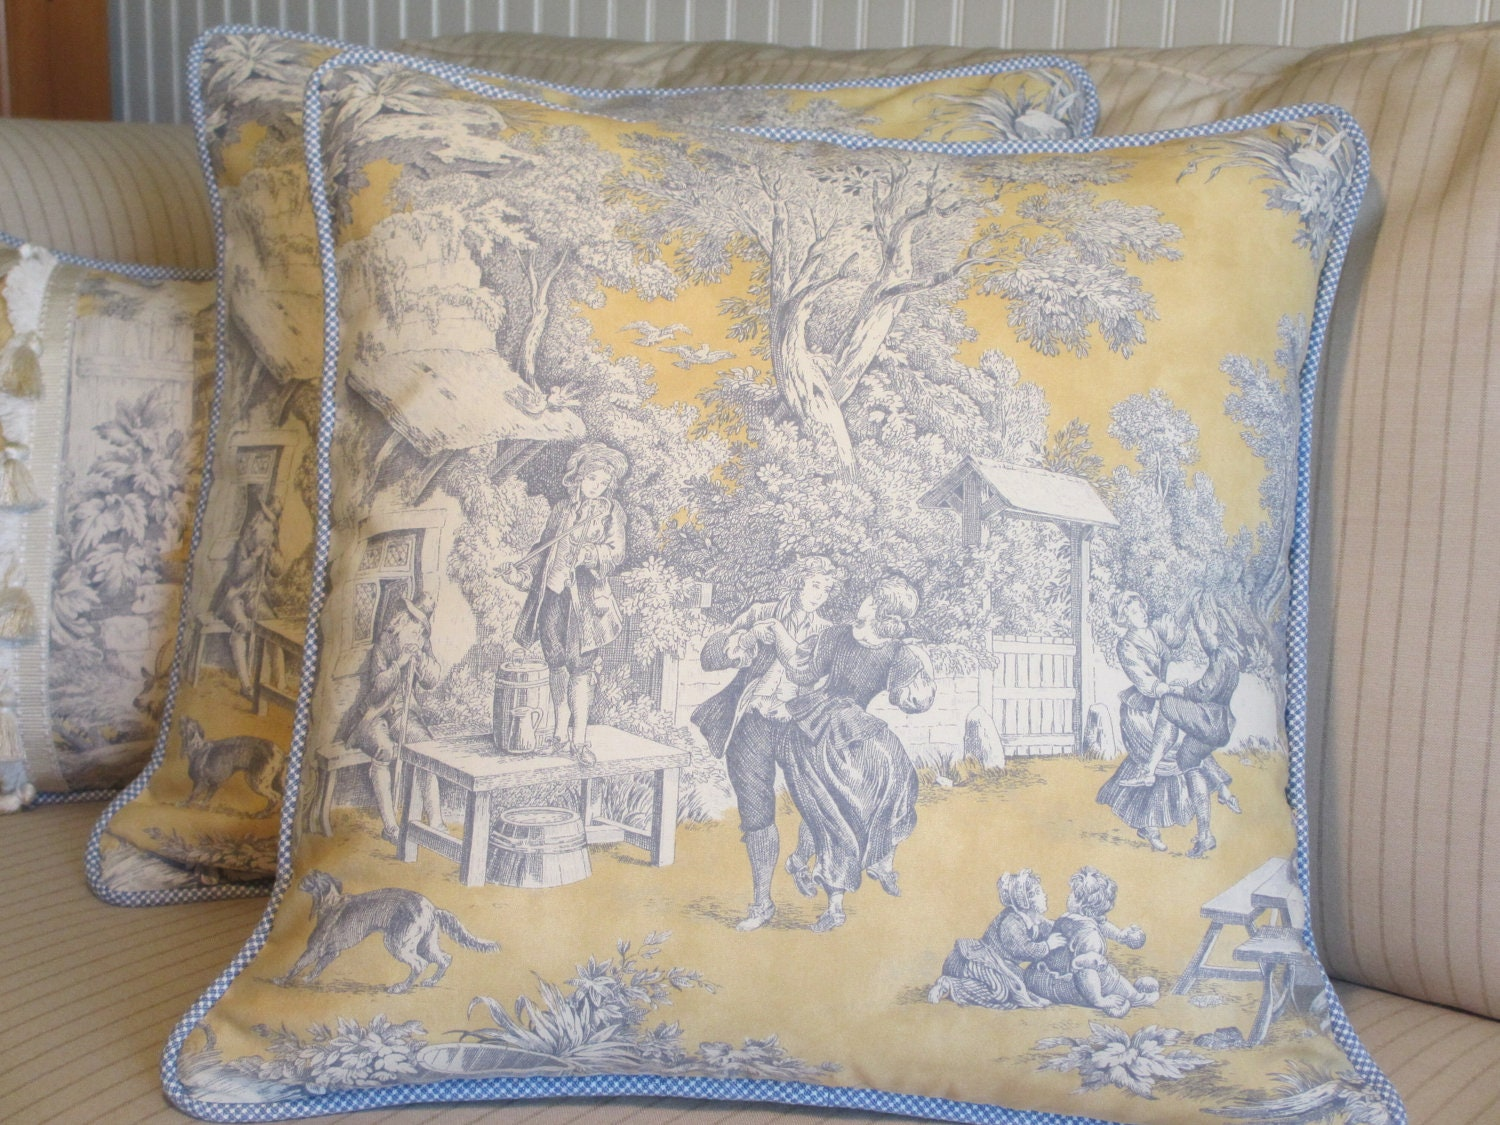 Toile French Country Pillow Cover Classic by  : ilfullxfull381304201opfg from www.etsy.com size 1500 x 1125 jpeg 434kB